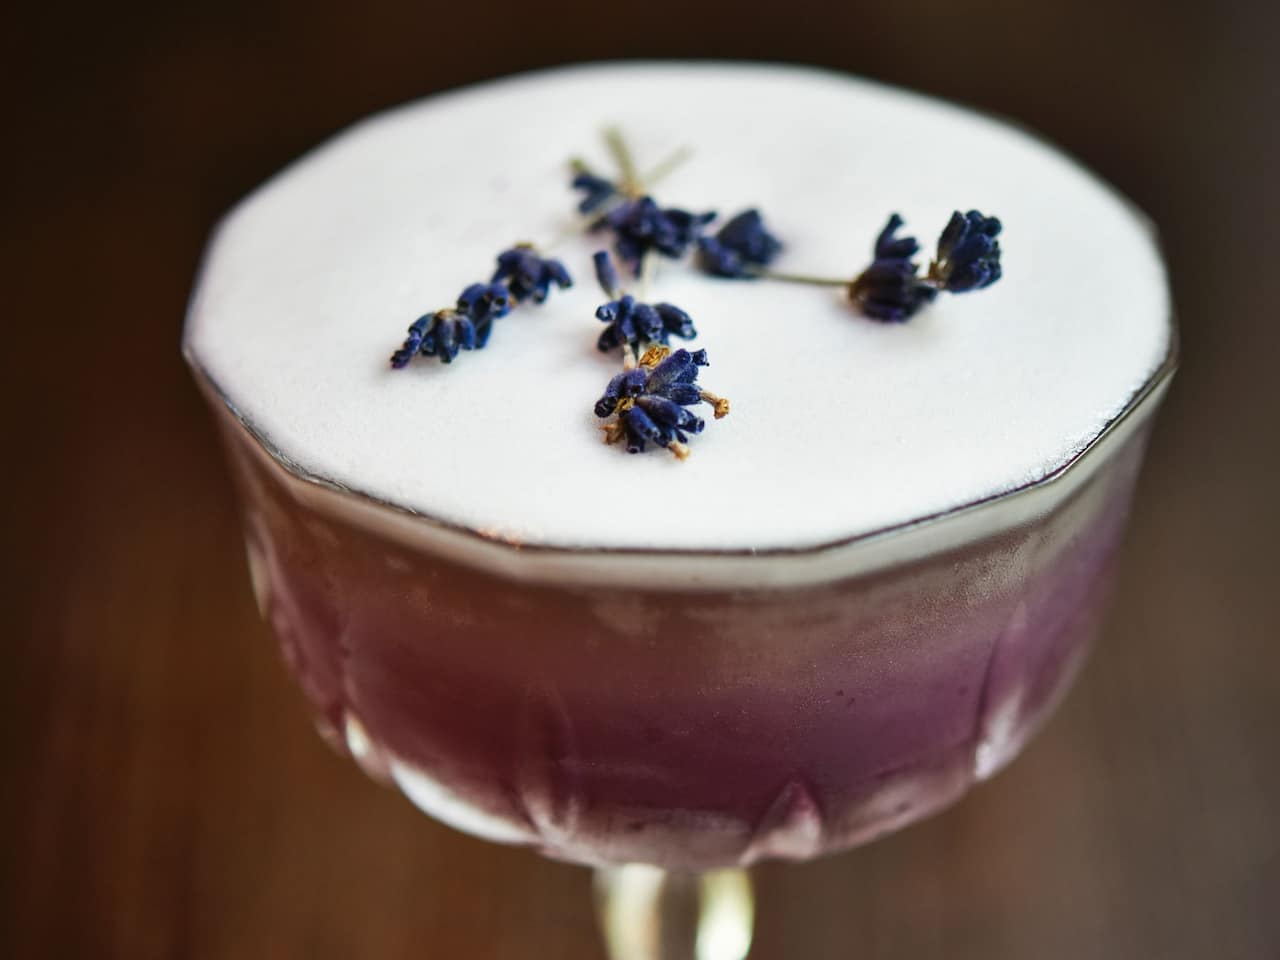 Lavender Fields Cocktail at The Montagu Kitchen restaurant in Marylebone